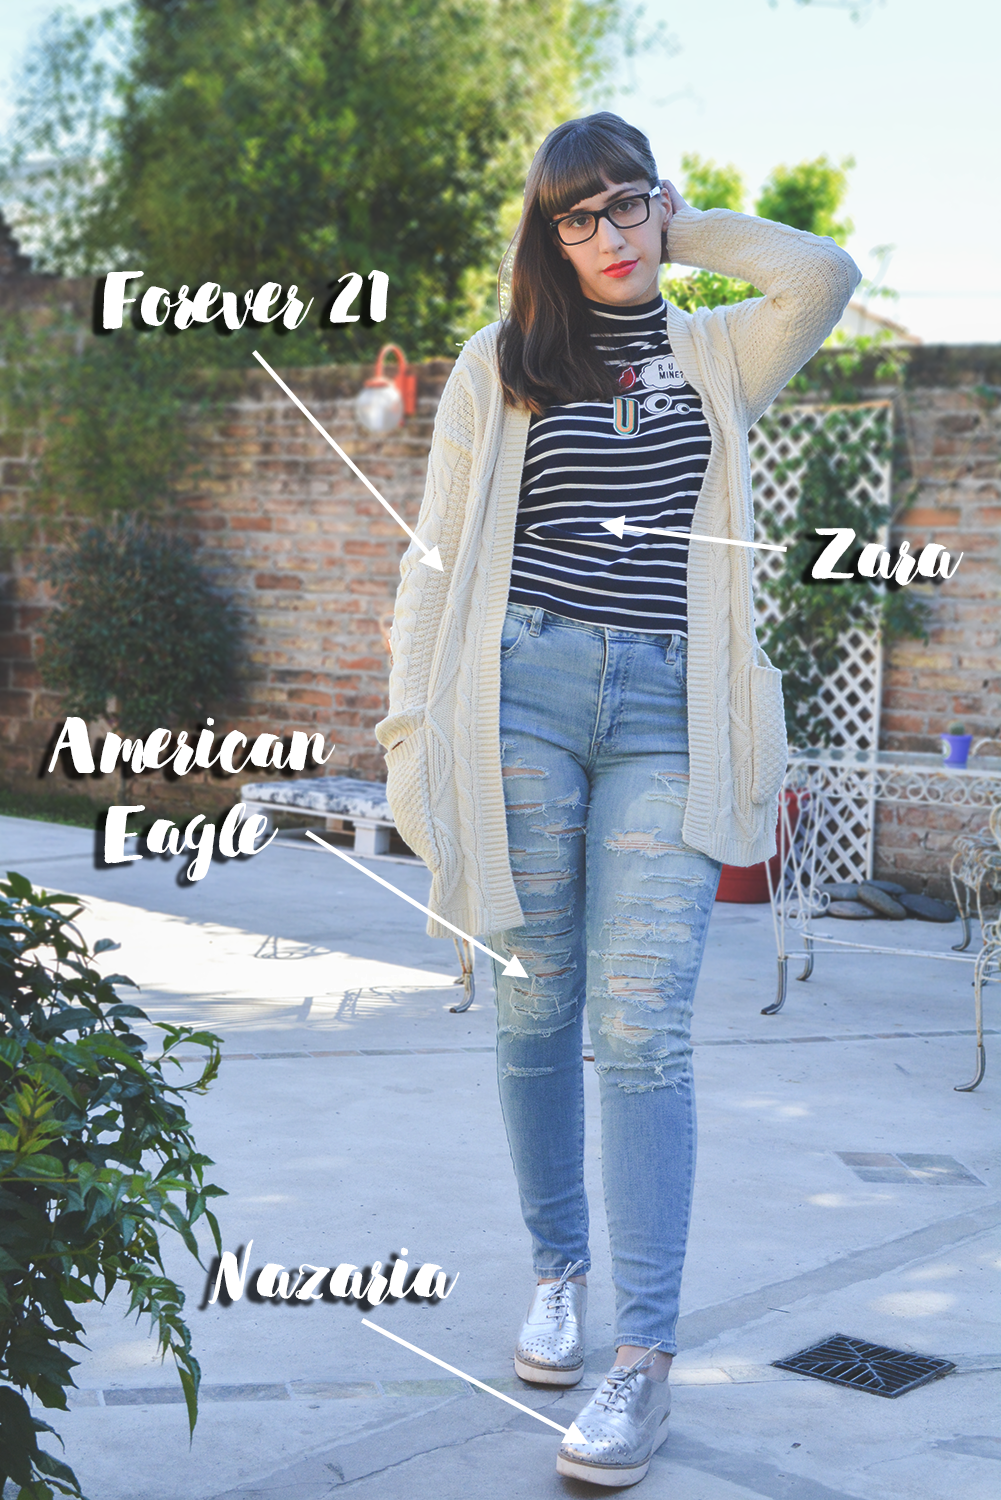 fashion, fashion blogger, fashion blogger argentina, bloguera de moda, outfit, ootd, conjunto, what i wore, fashionista, trends, trends winter 2017, tendencias, tendencias invierno 2017